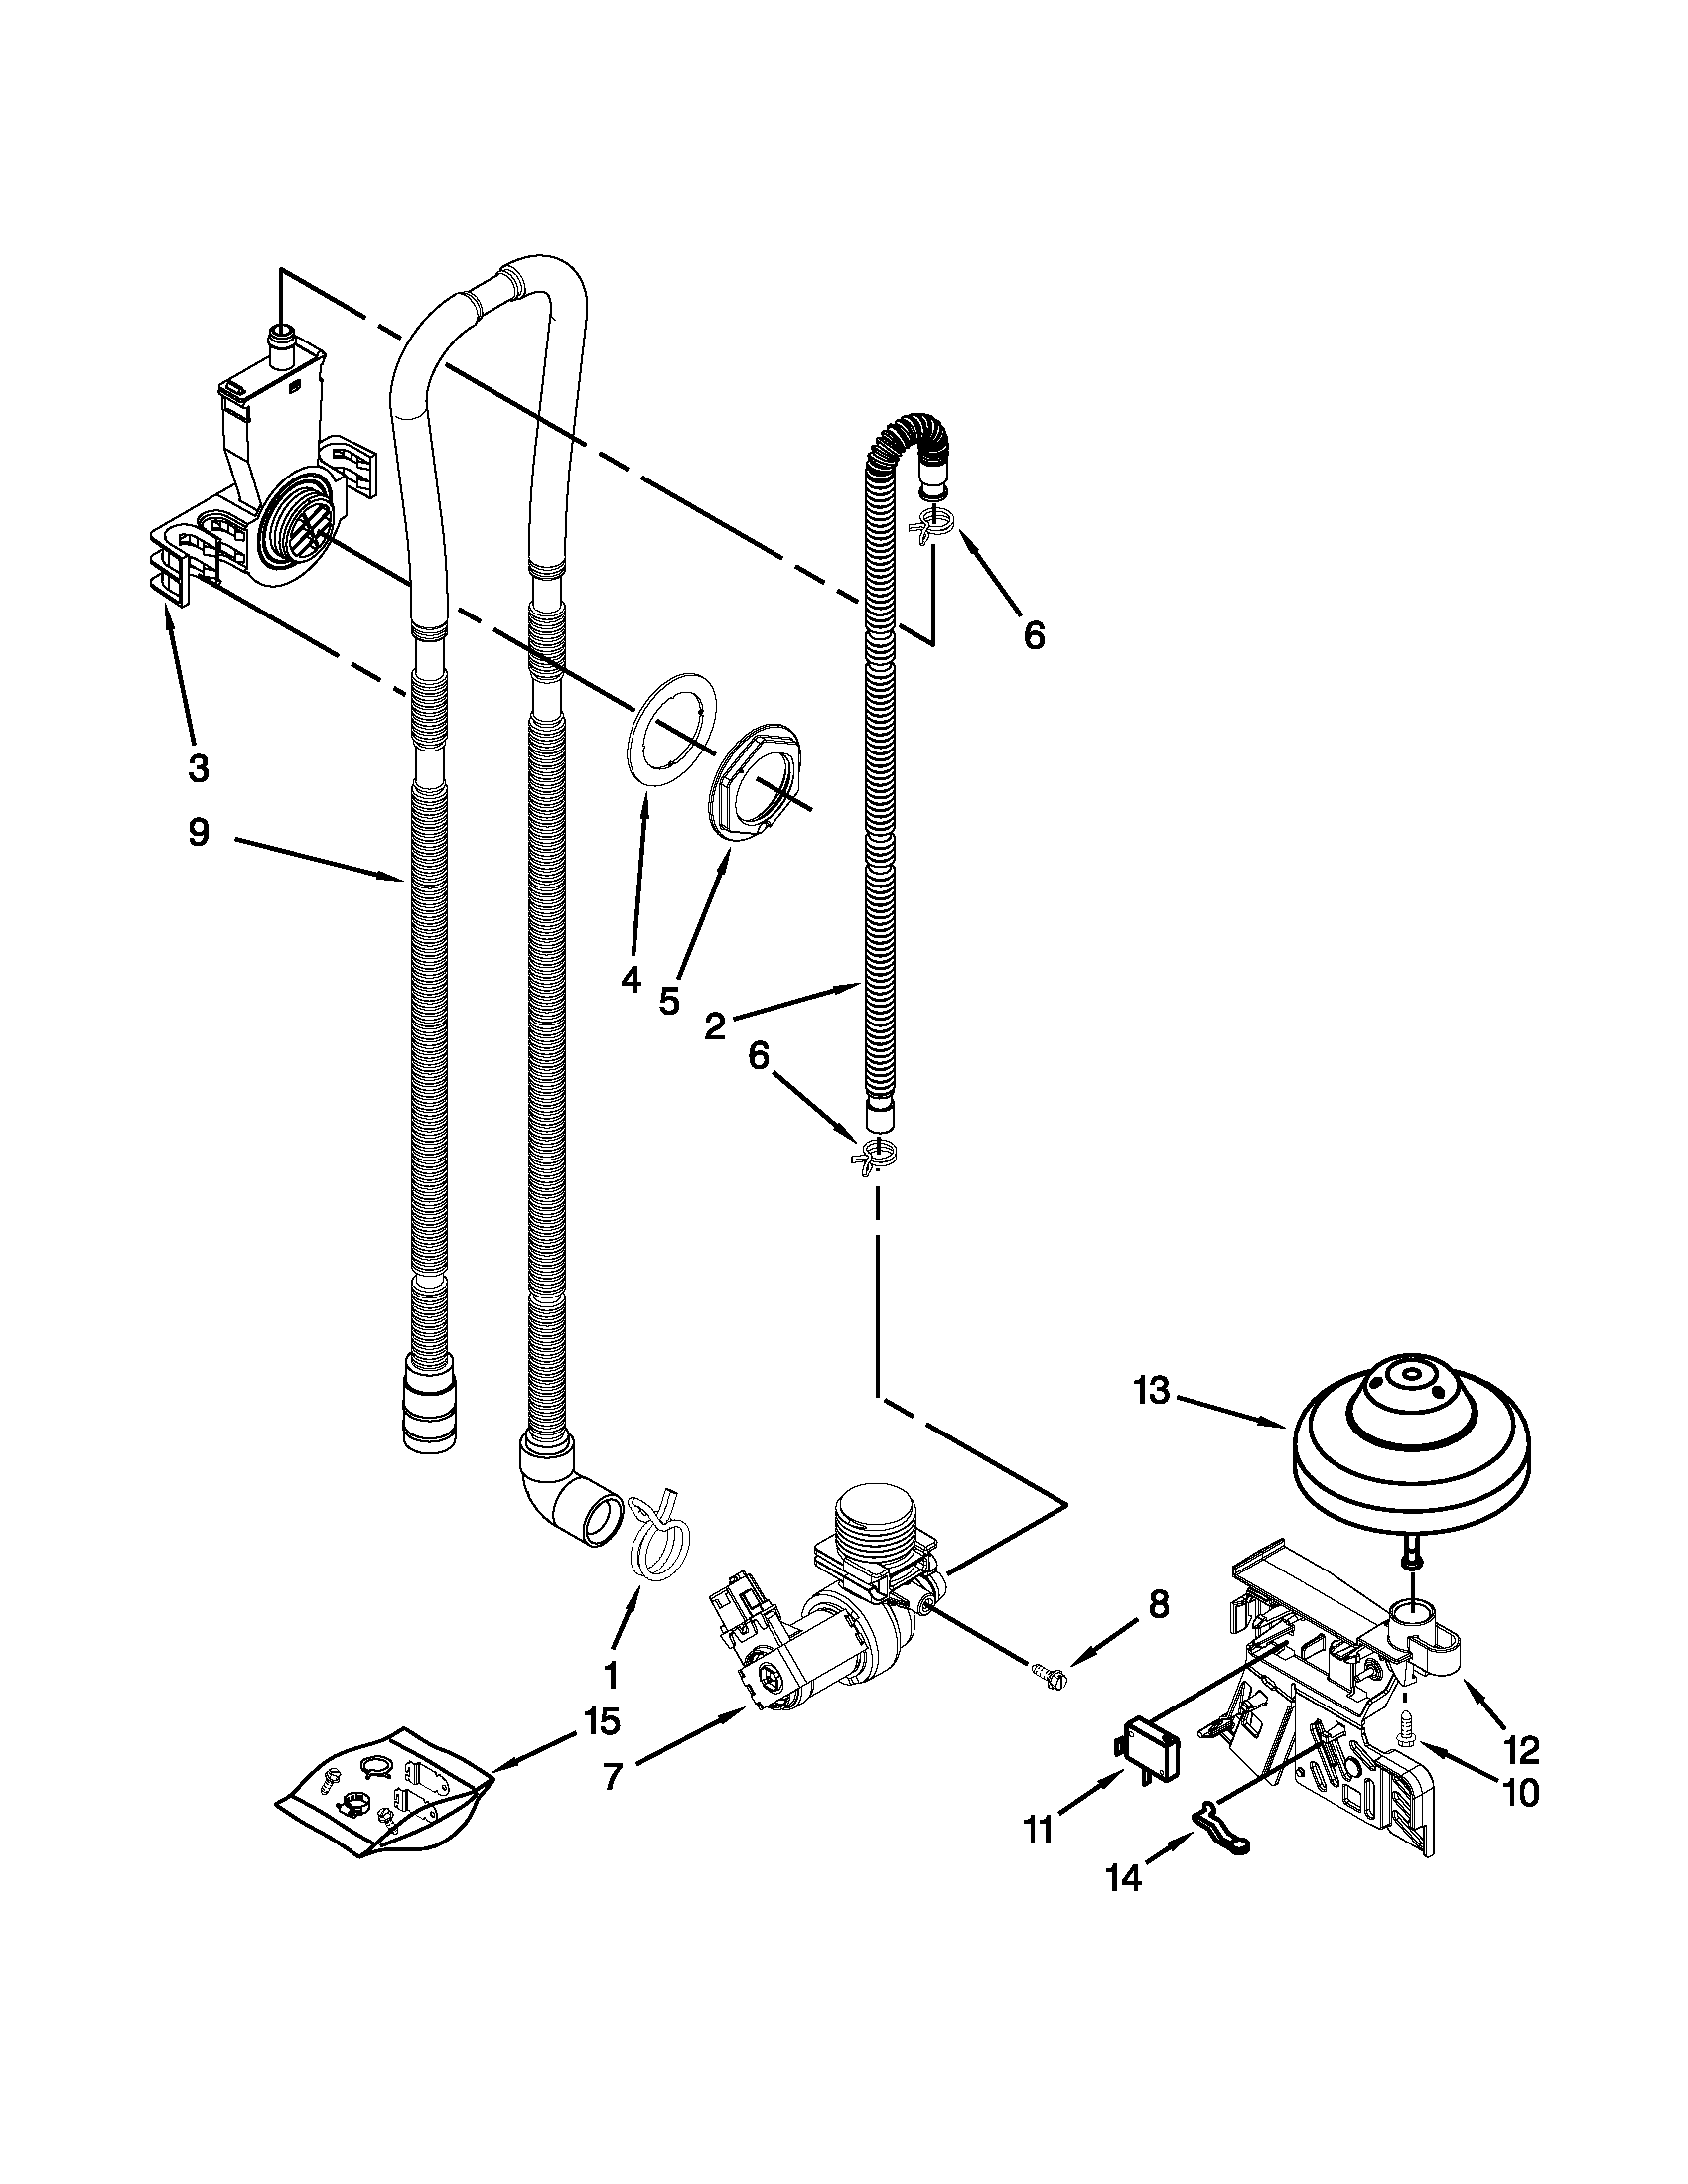 Whirlpool 7WDT770PAYW4 fill, drain and overfill parts diagram